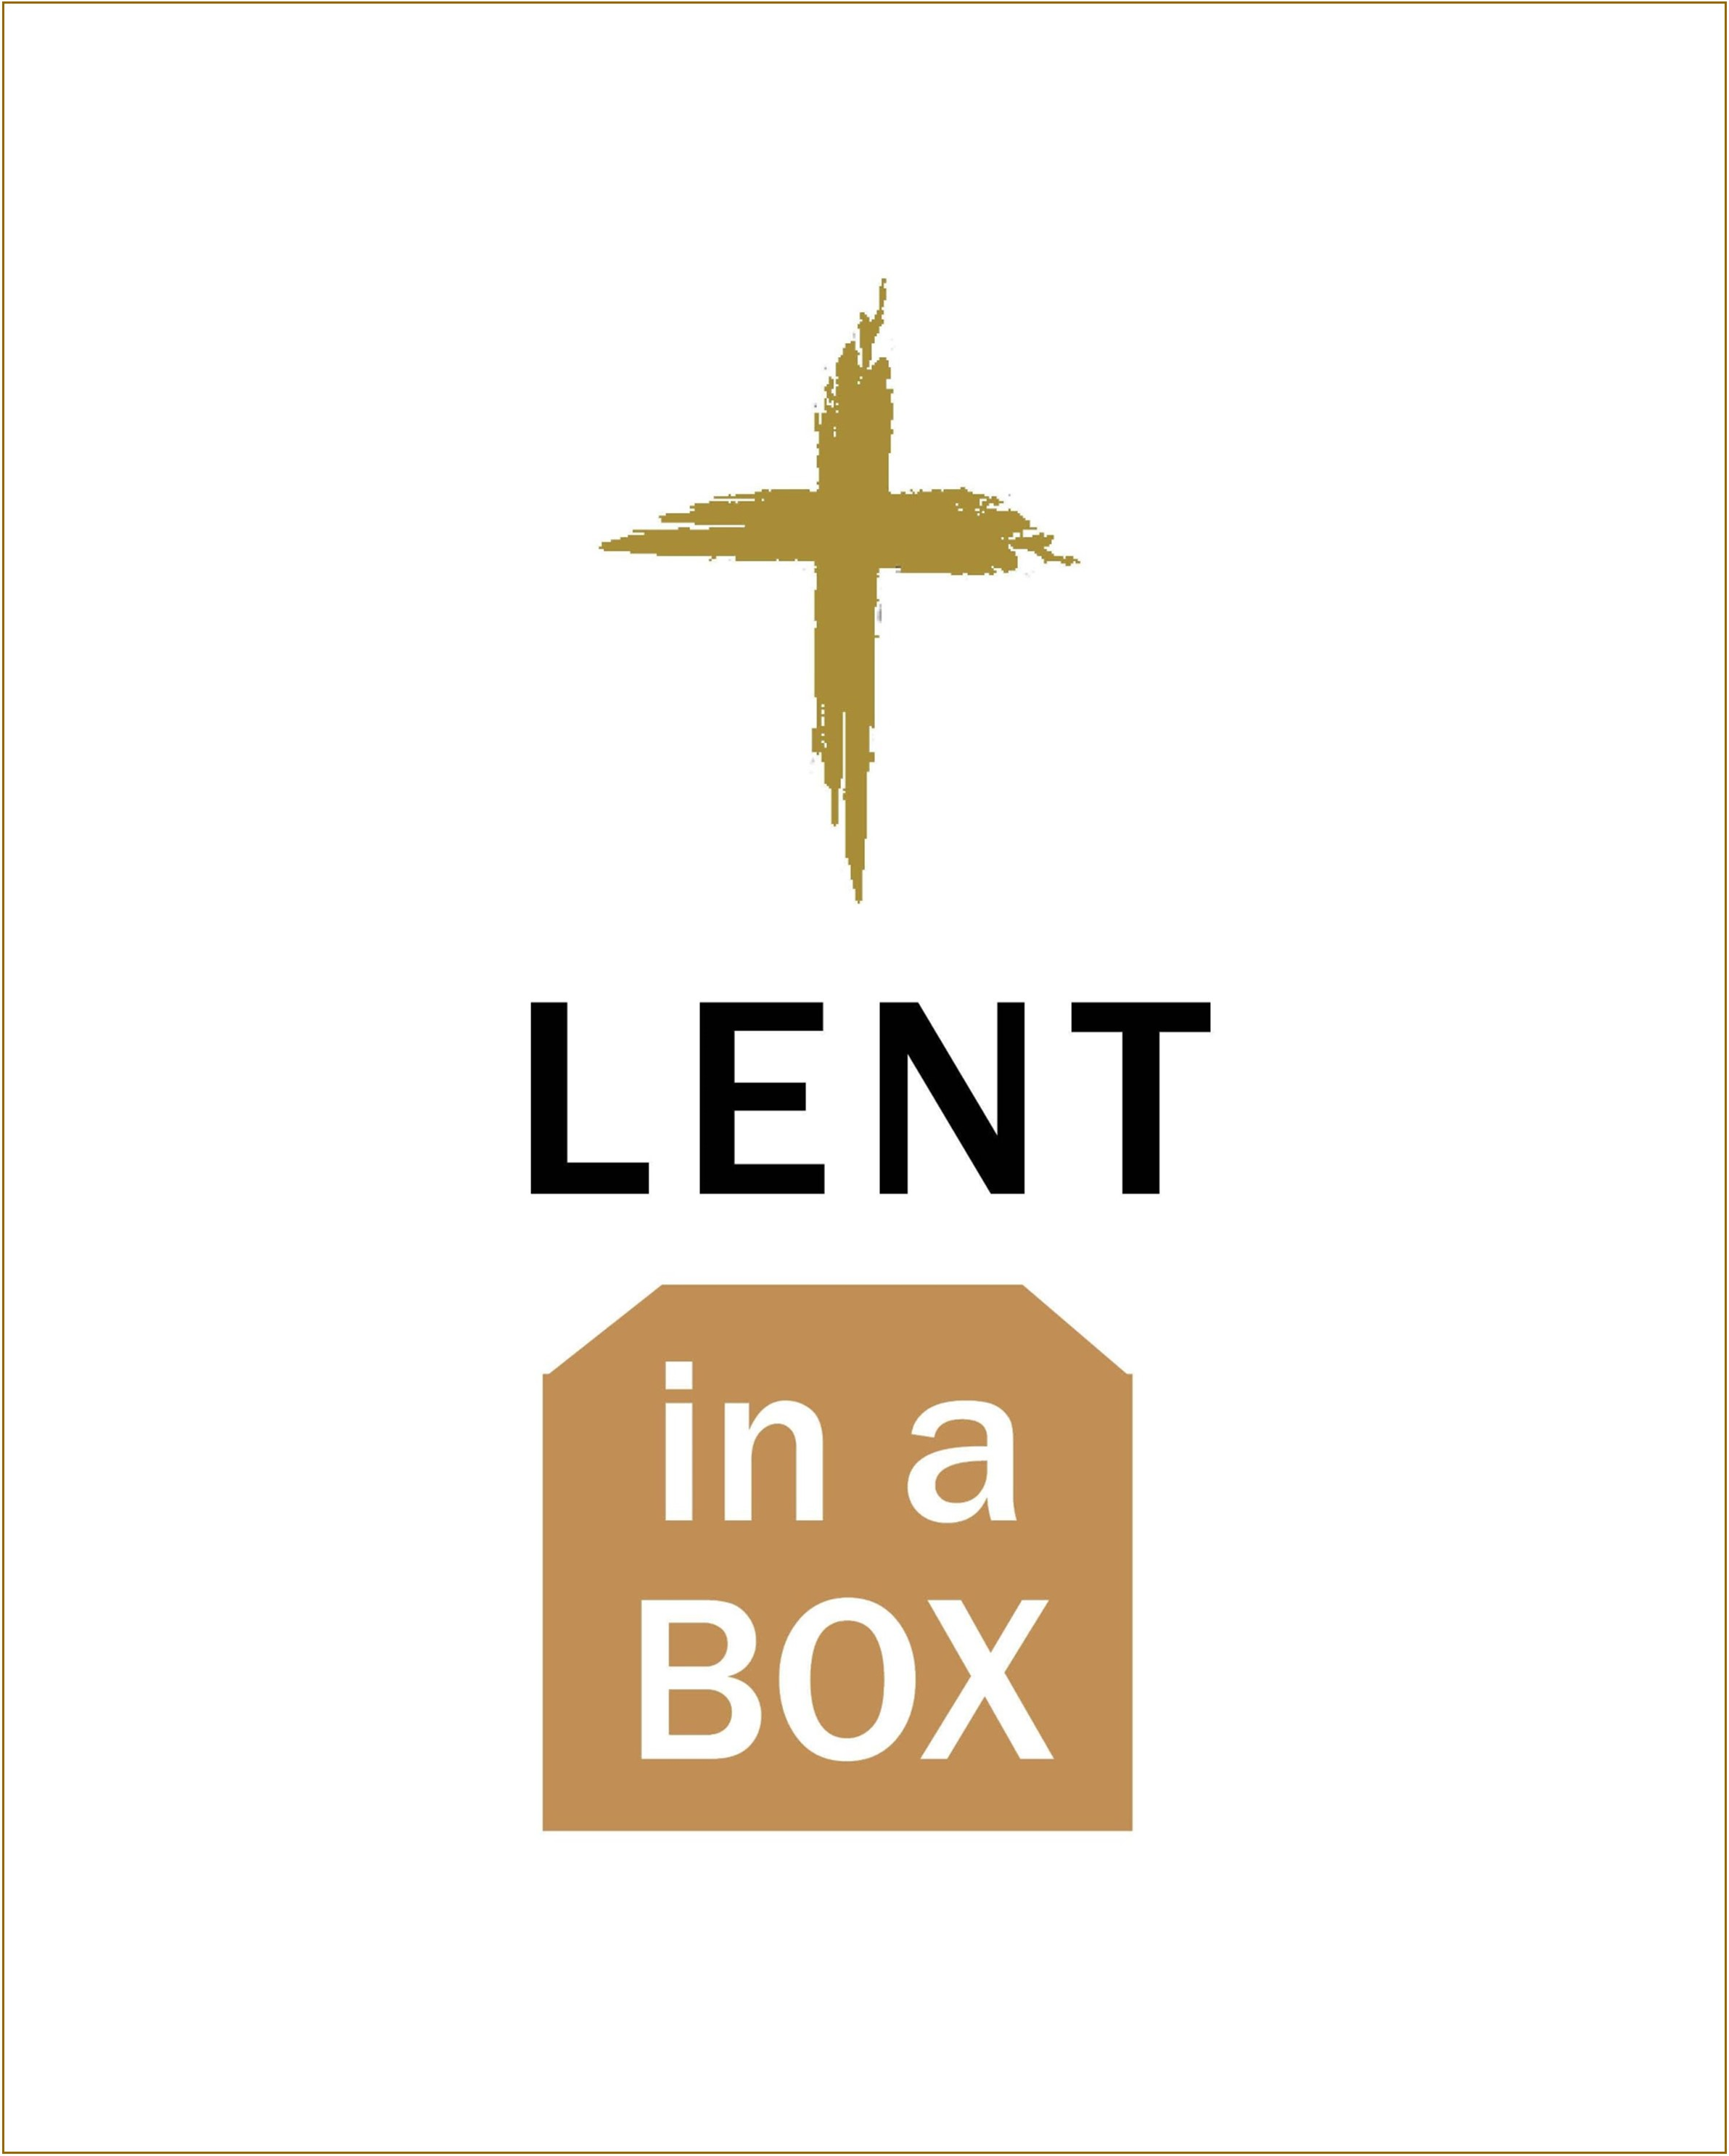 Lent in a Box